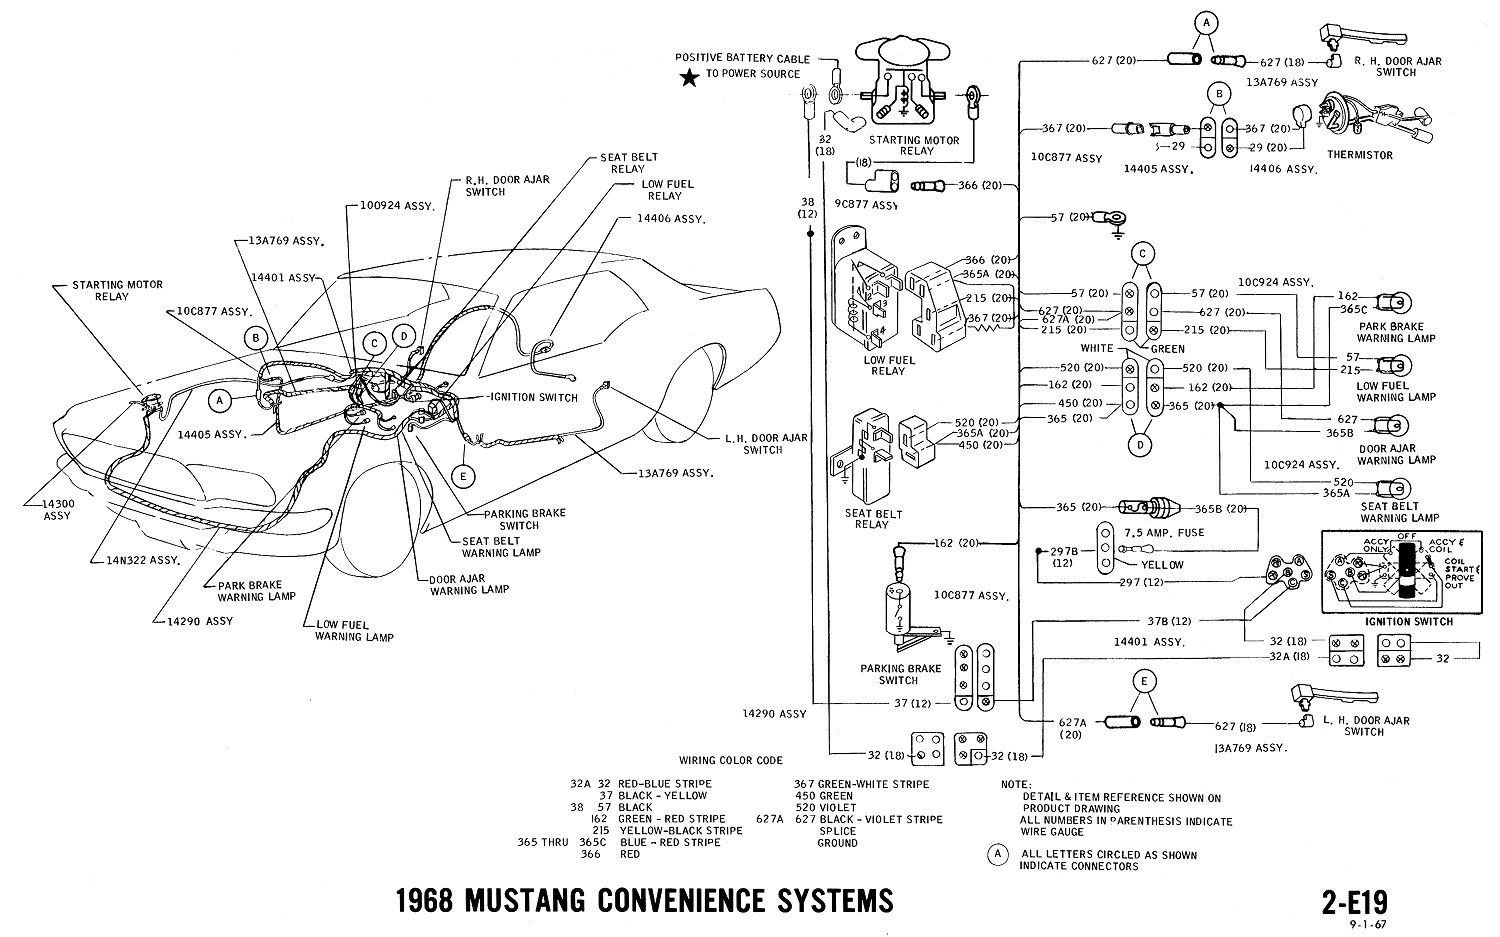 1967 ford alternator wiring diagram | better wiring ... 1969 ford bronco alternator wiring diagram ford bronco alternator wiring